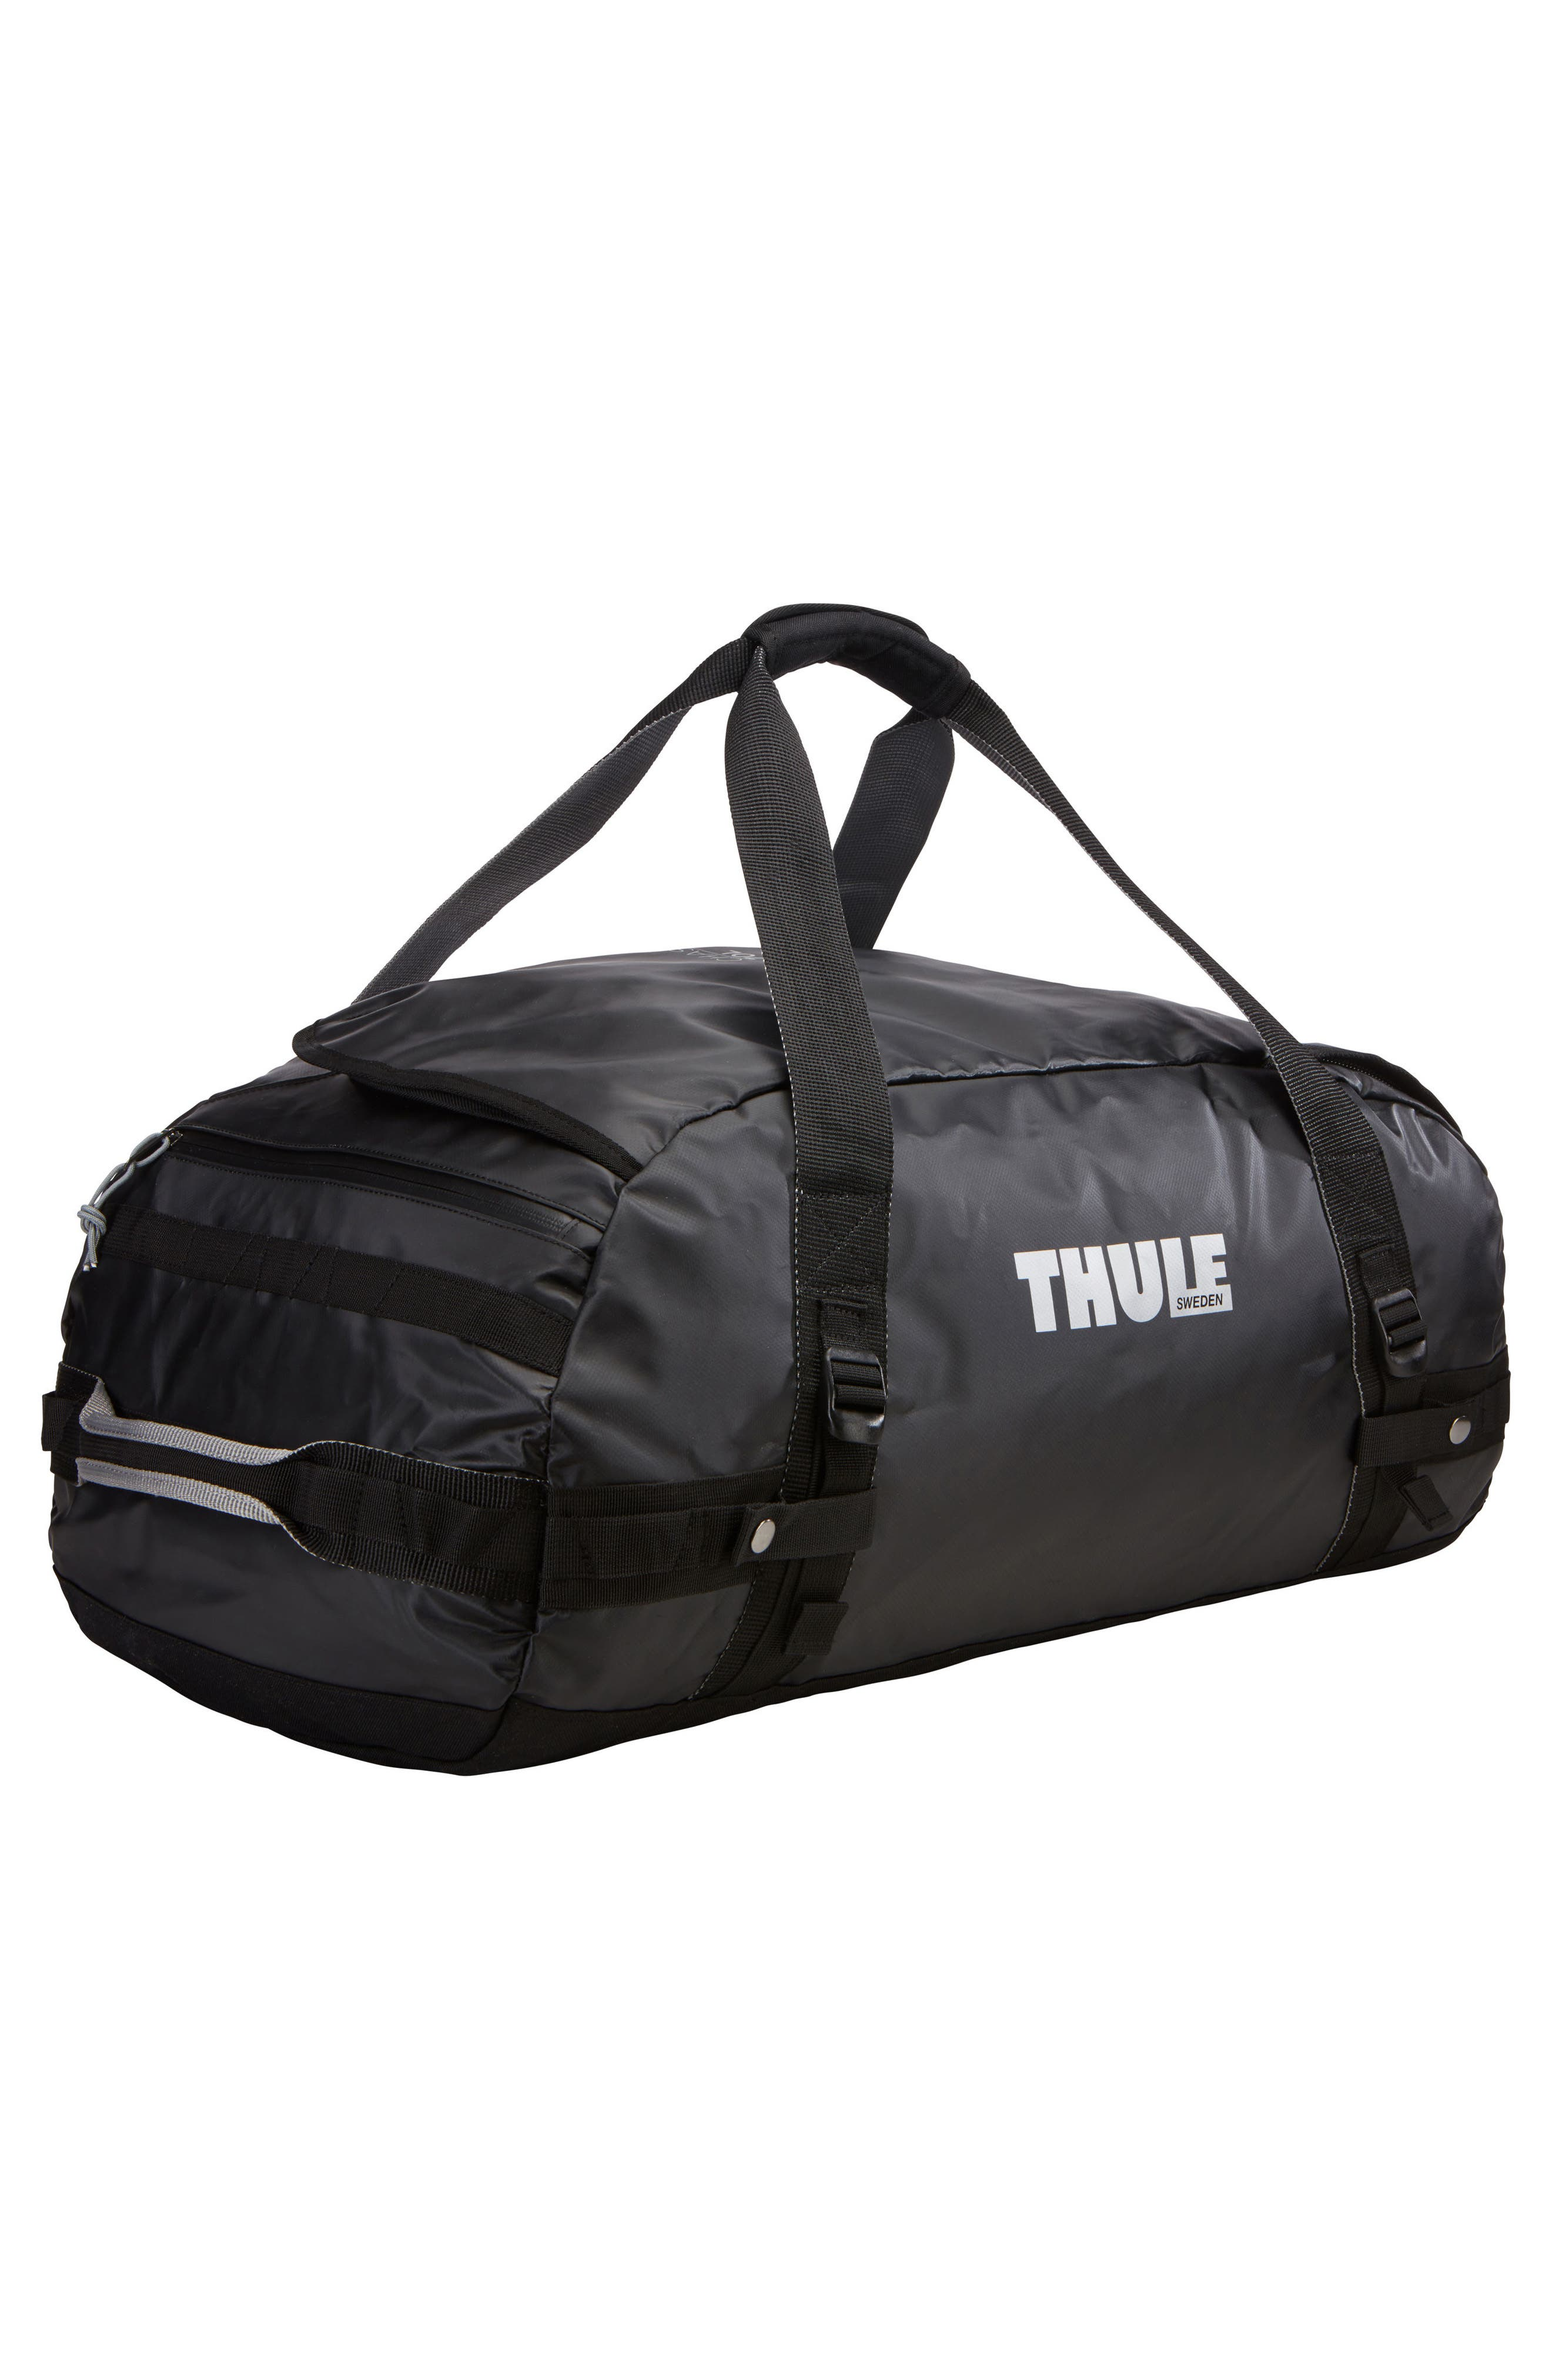 Chasm 70-Liter Convertible Duffel Bag,                             Alternate thumbnail 8, color,                             BLACK